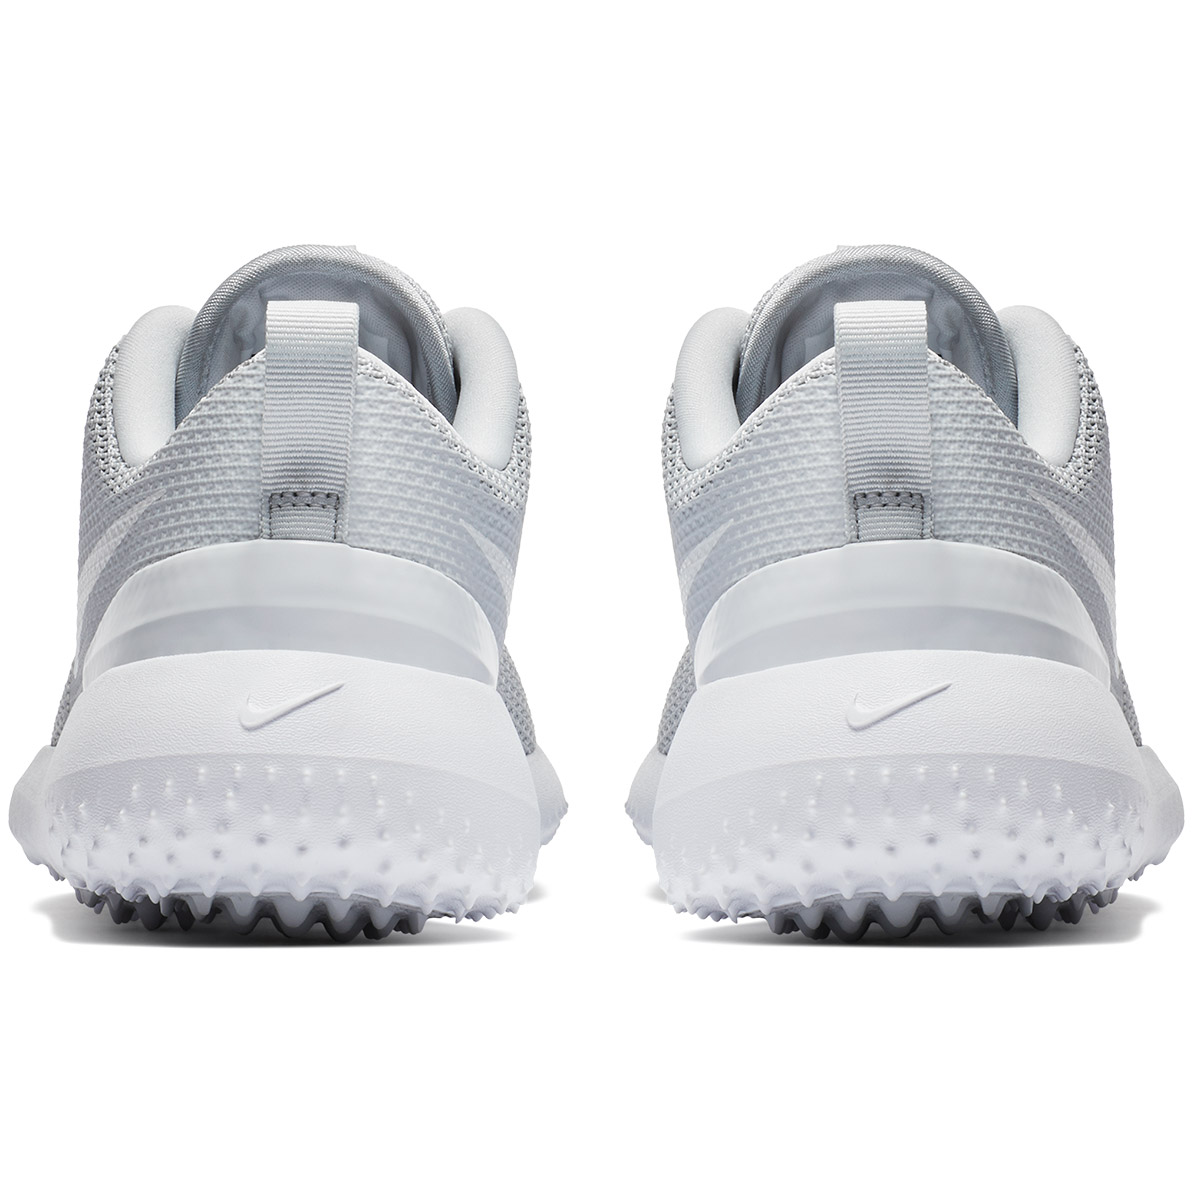 8f9e4a3530ce Nike Golf Roshe G Ladies Shoes from american golf